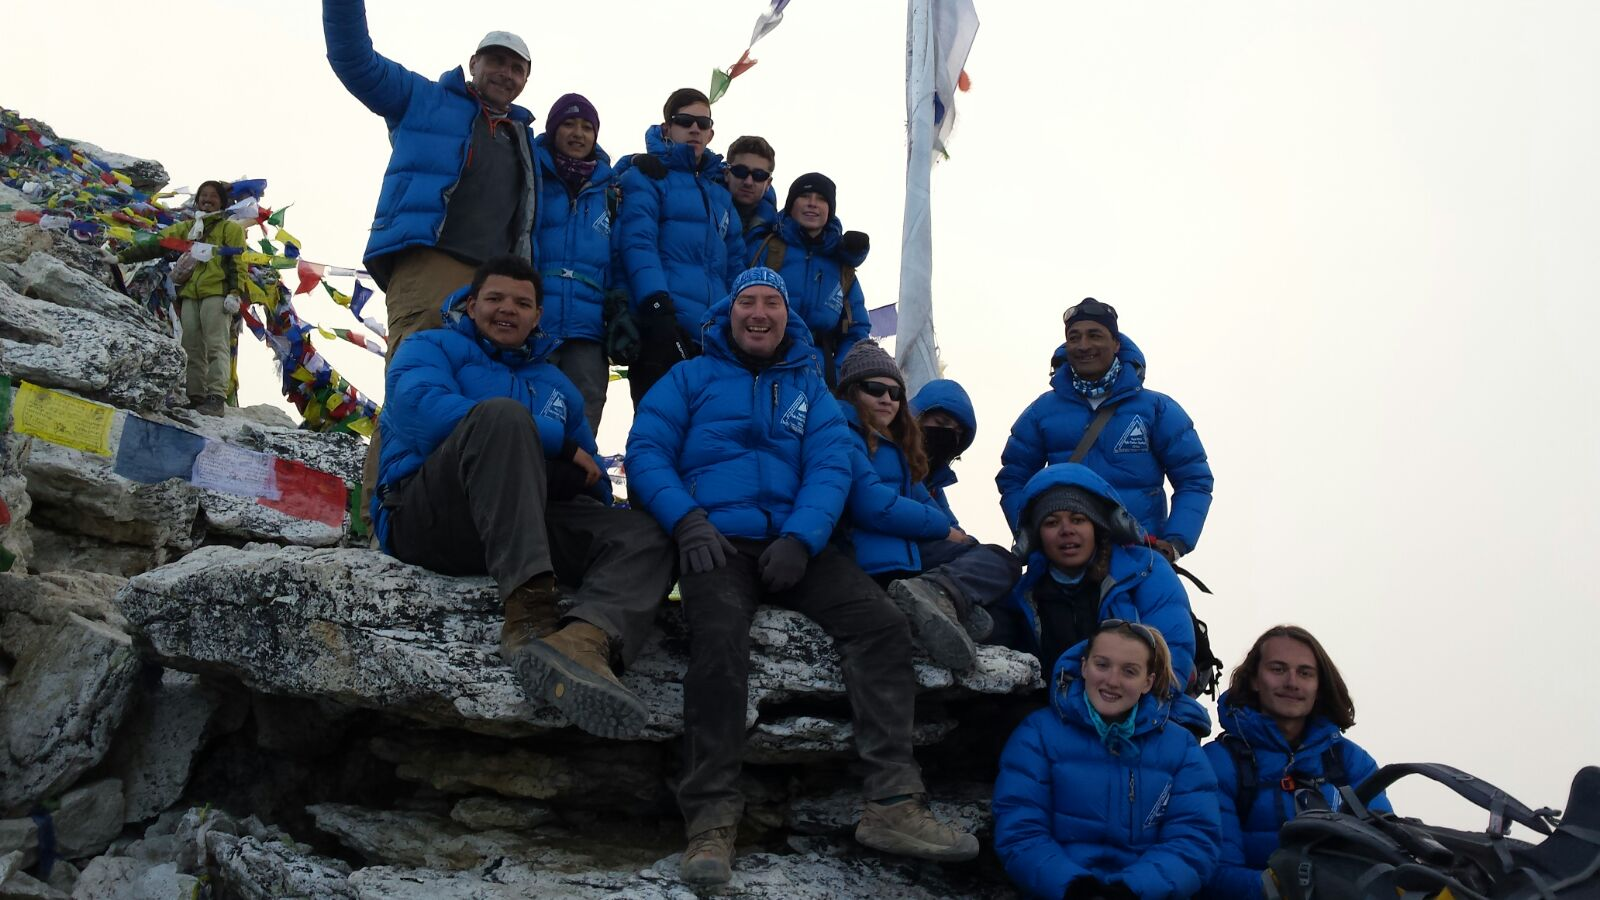 The group at the summit